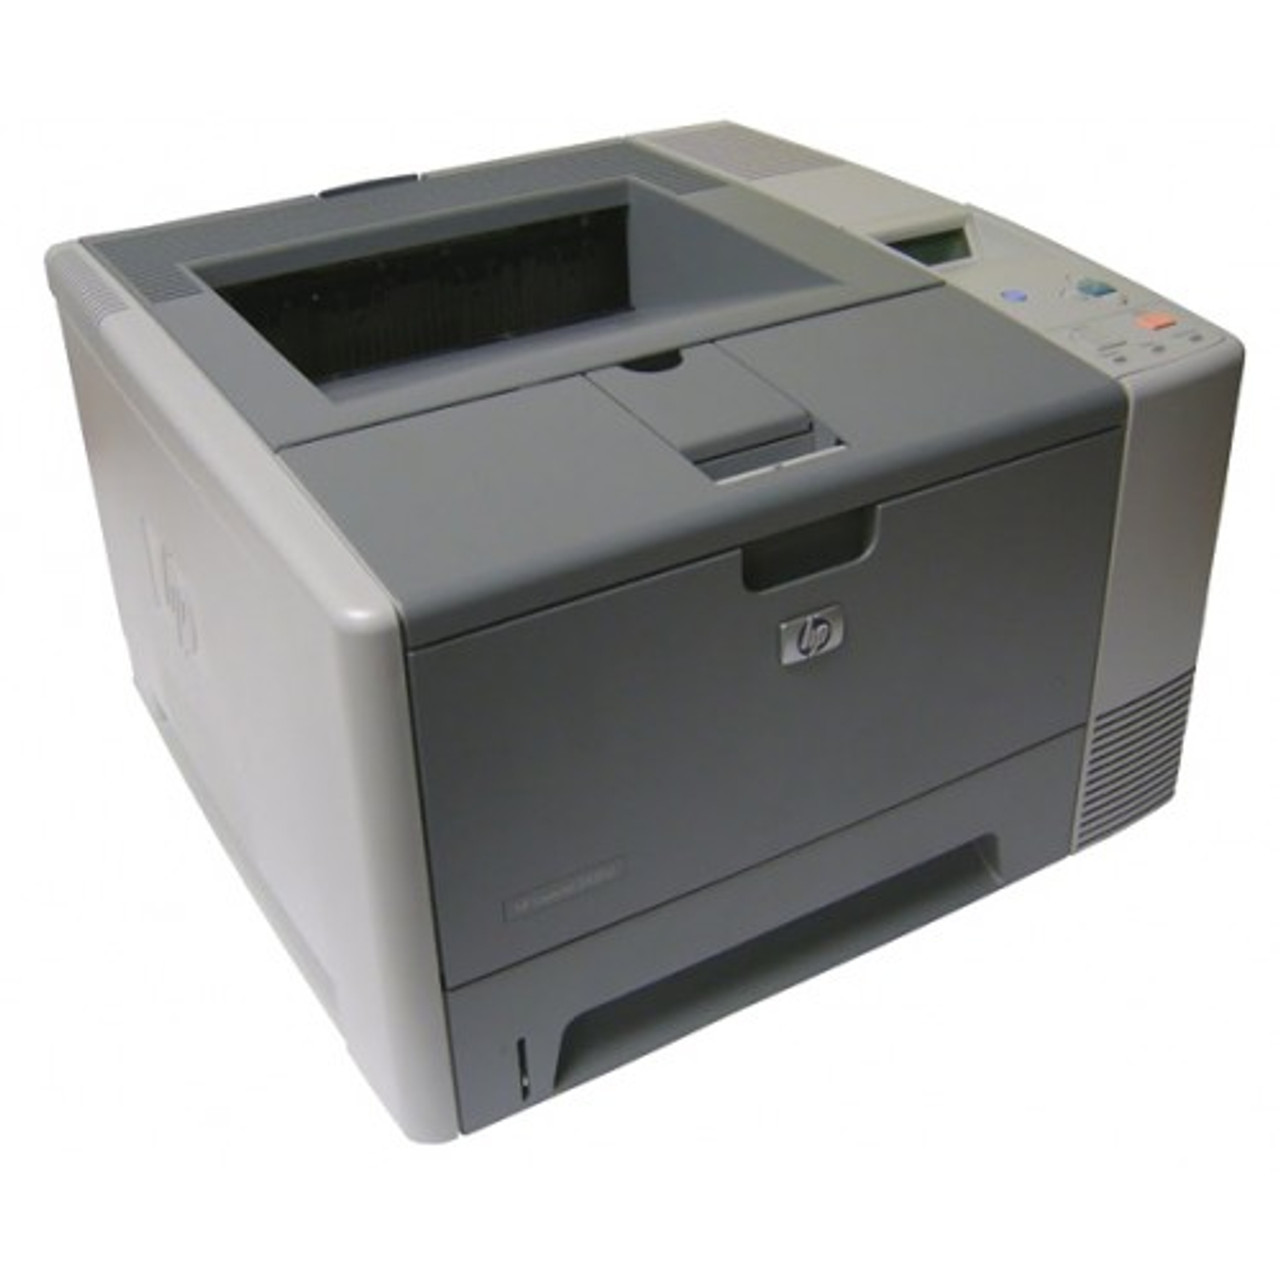 HP LaserJet 2430n - Q5964A - HP Laser Printer for sale